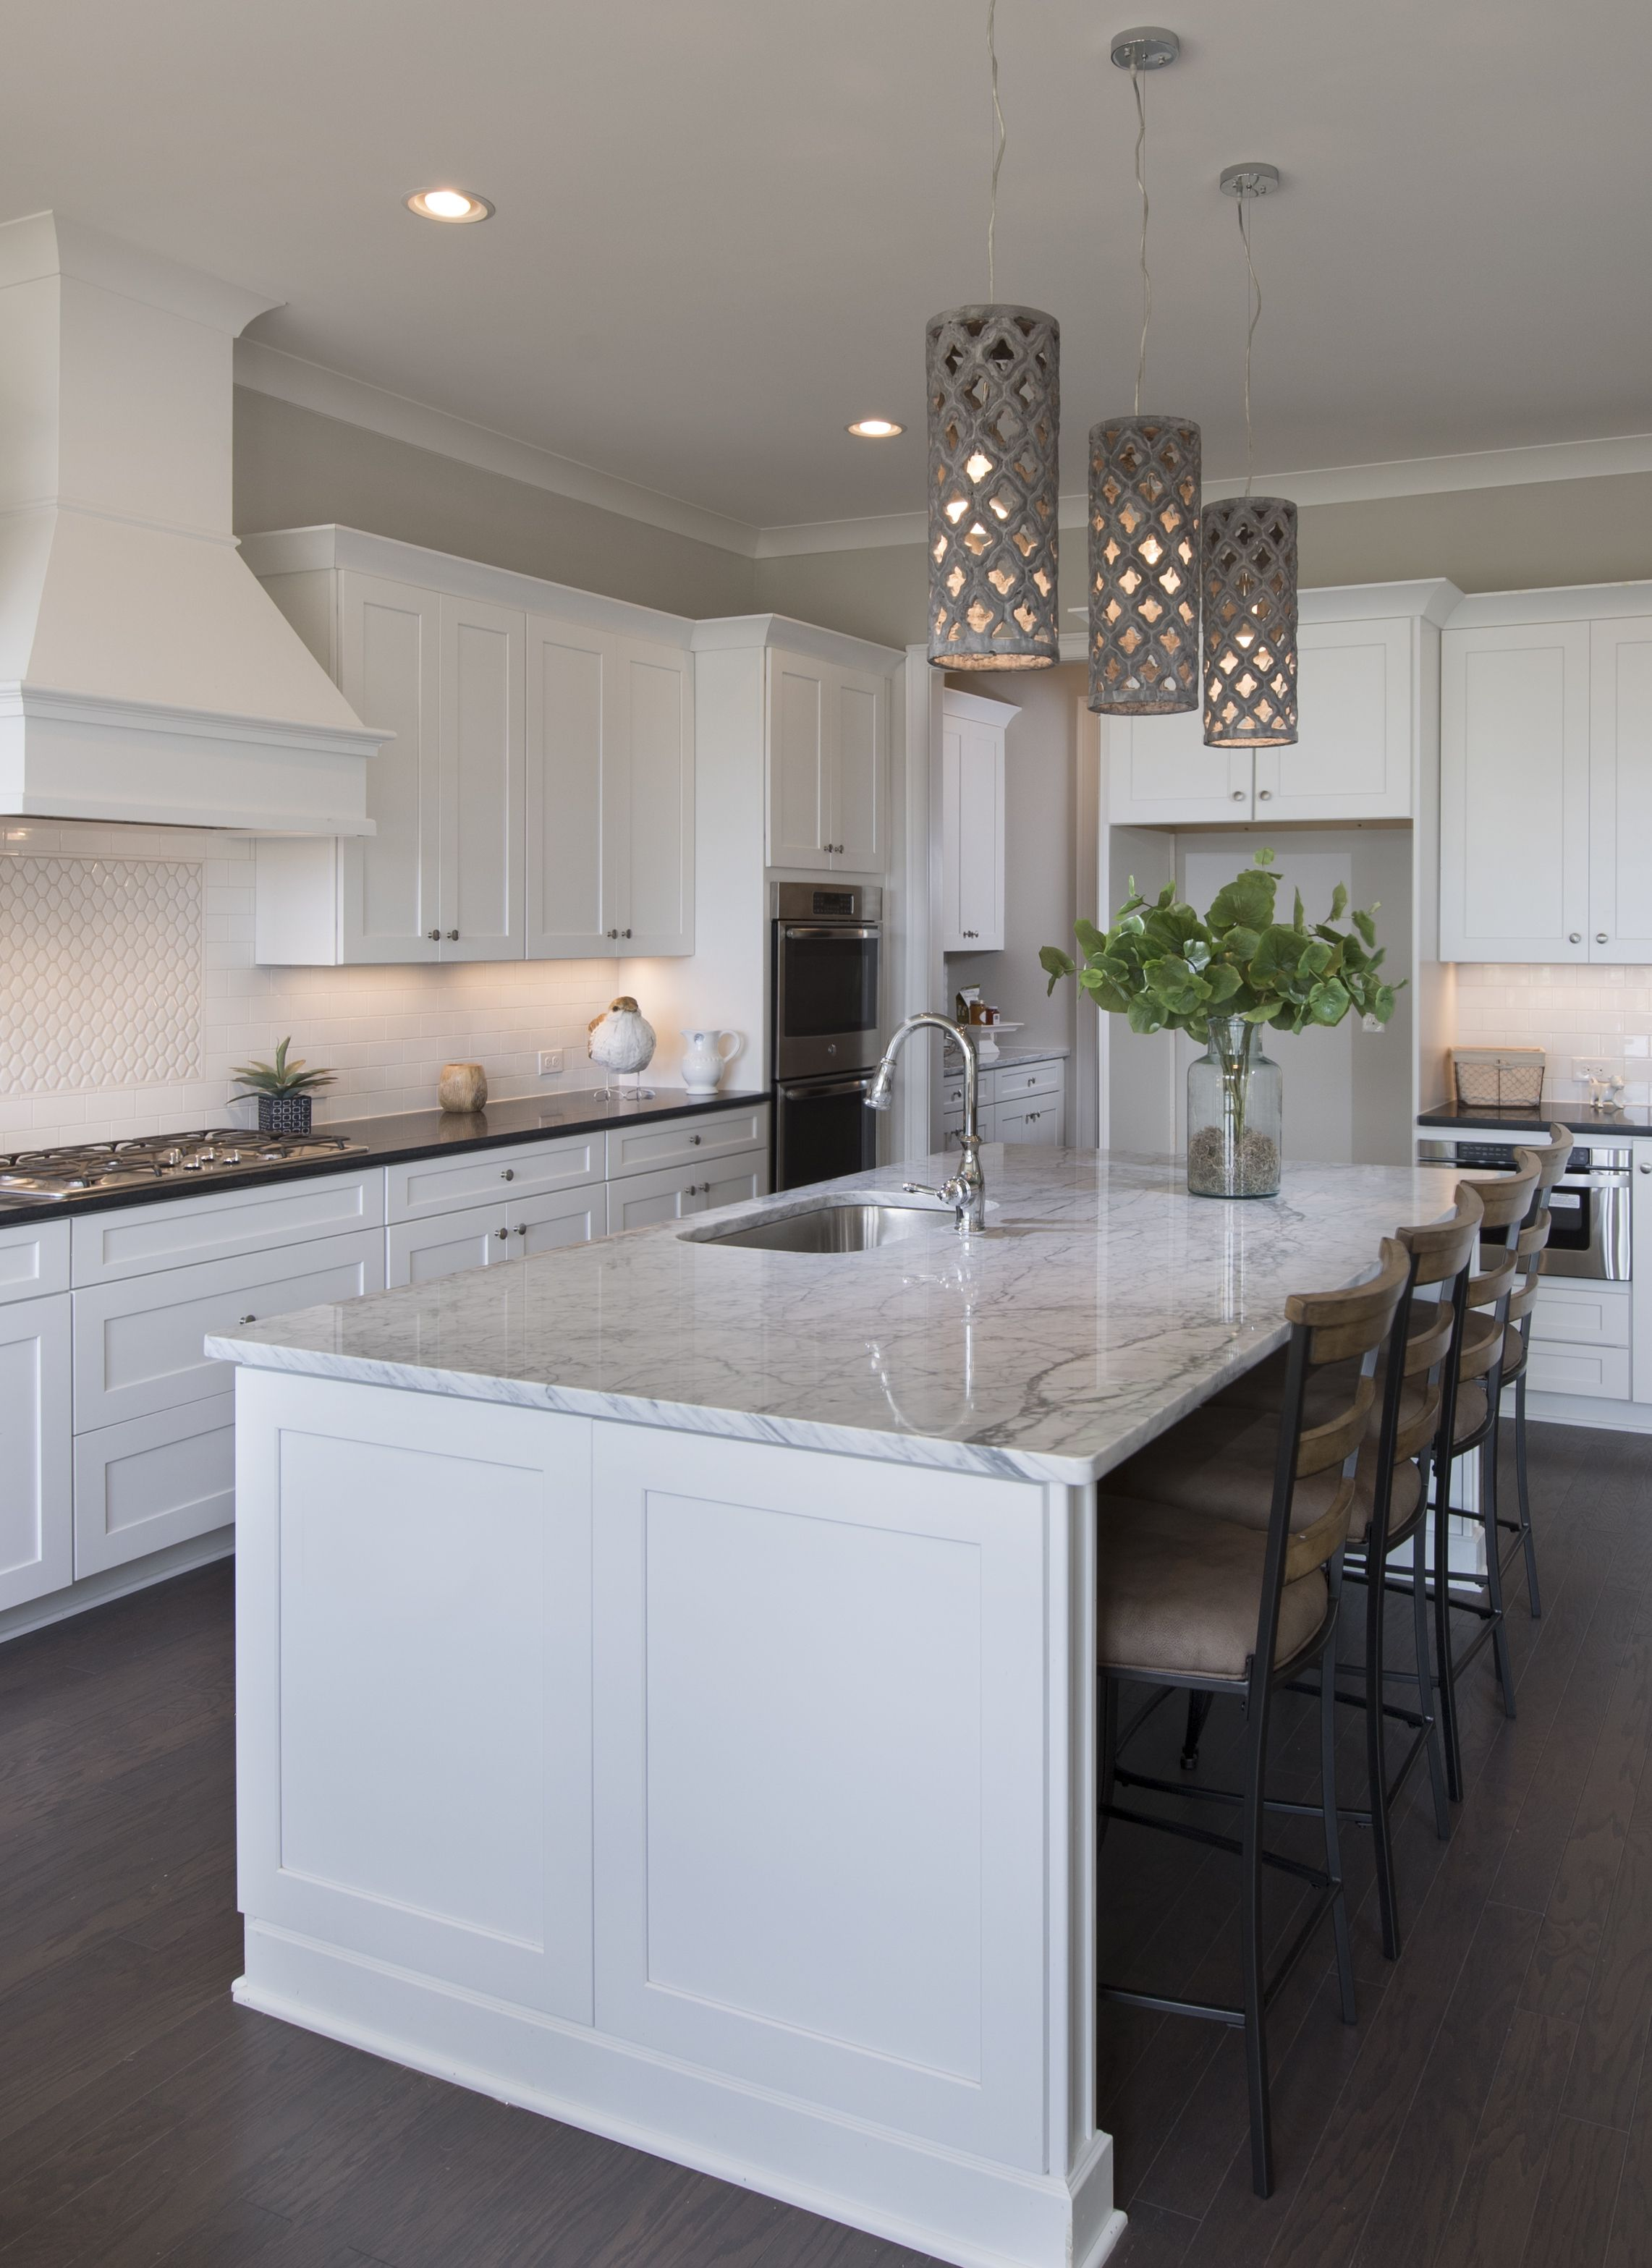 Pleasing Model Kitchen At Emerson In East Cobb Marietta Georgia Download Free Architecture Designs Ponolprimenicaraguapropertycom